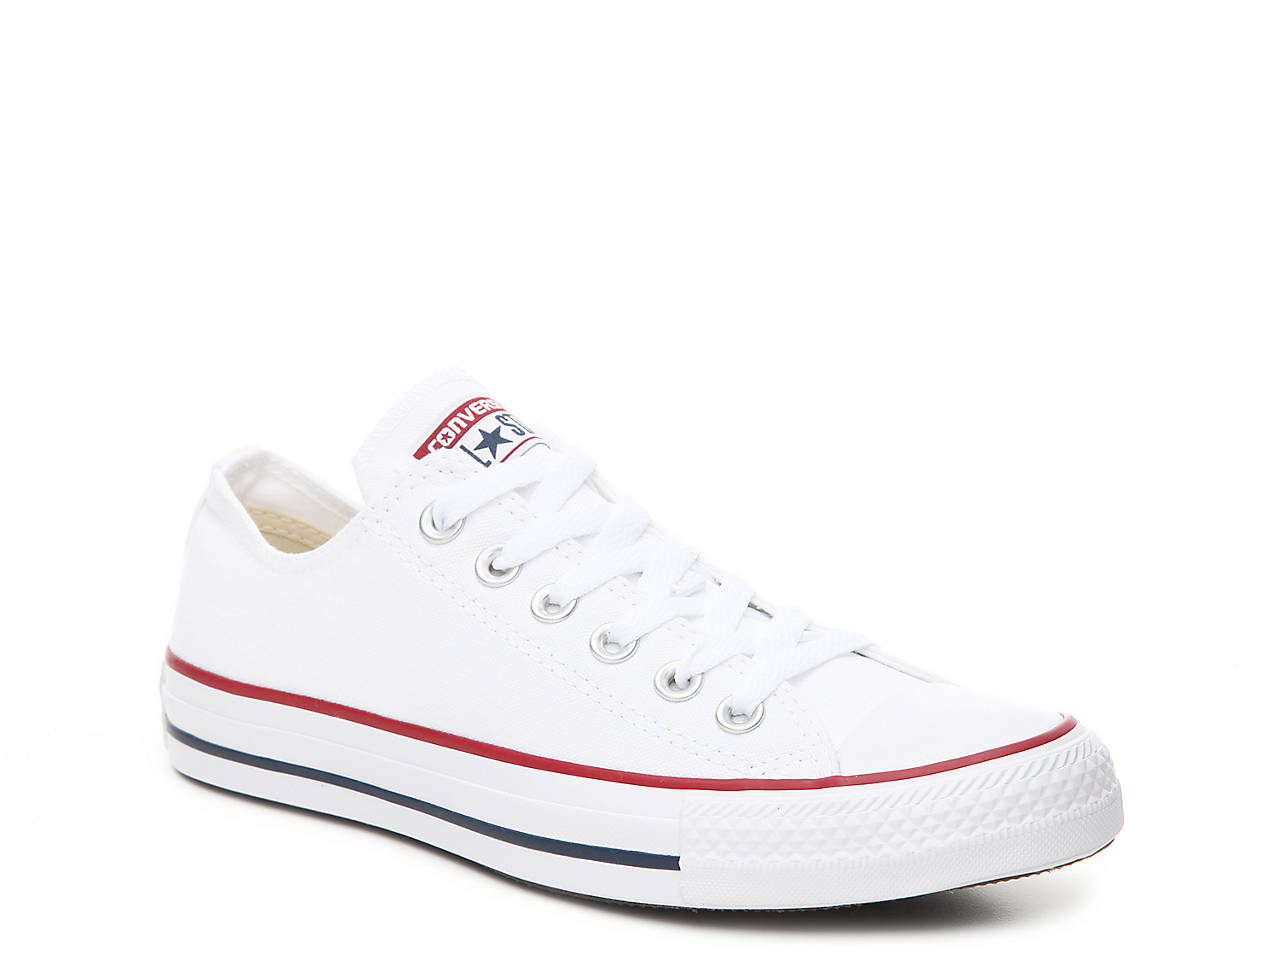 Converse Chuck Taylor All Star Sneaker - Women s Women s Shoes  abf2c3db33